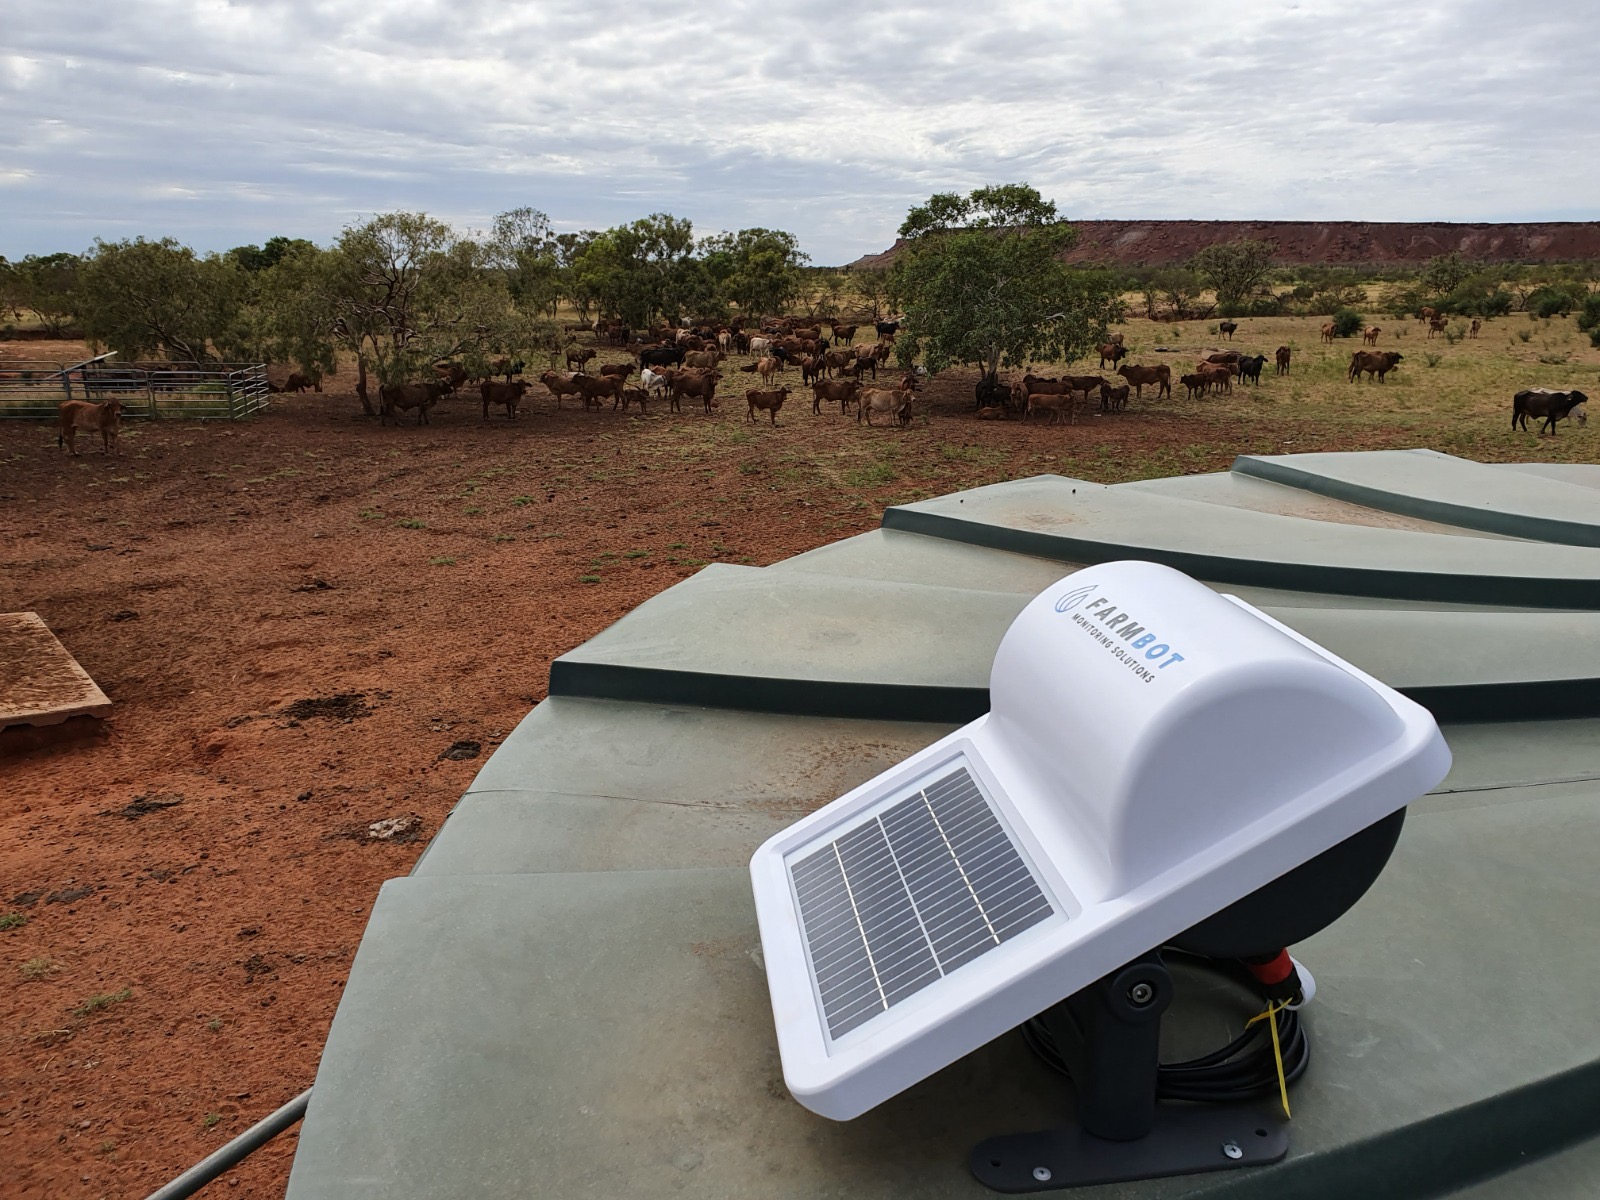 Farmbot enters into an agreement with Inmarsat and Pivotel to bring IoT-enabled water management solutions to farmers across Australia